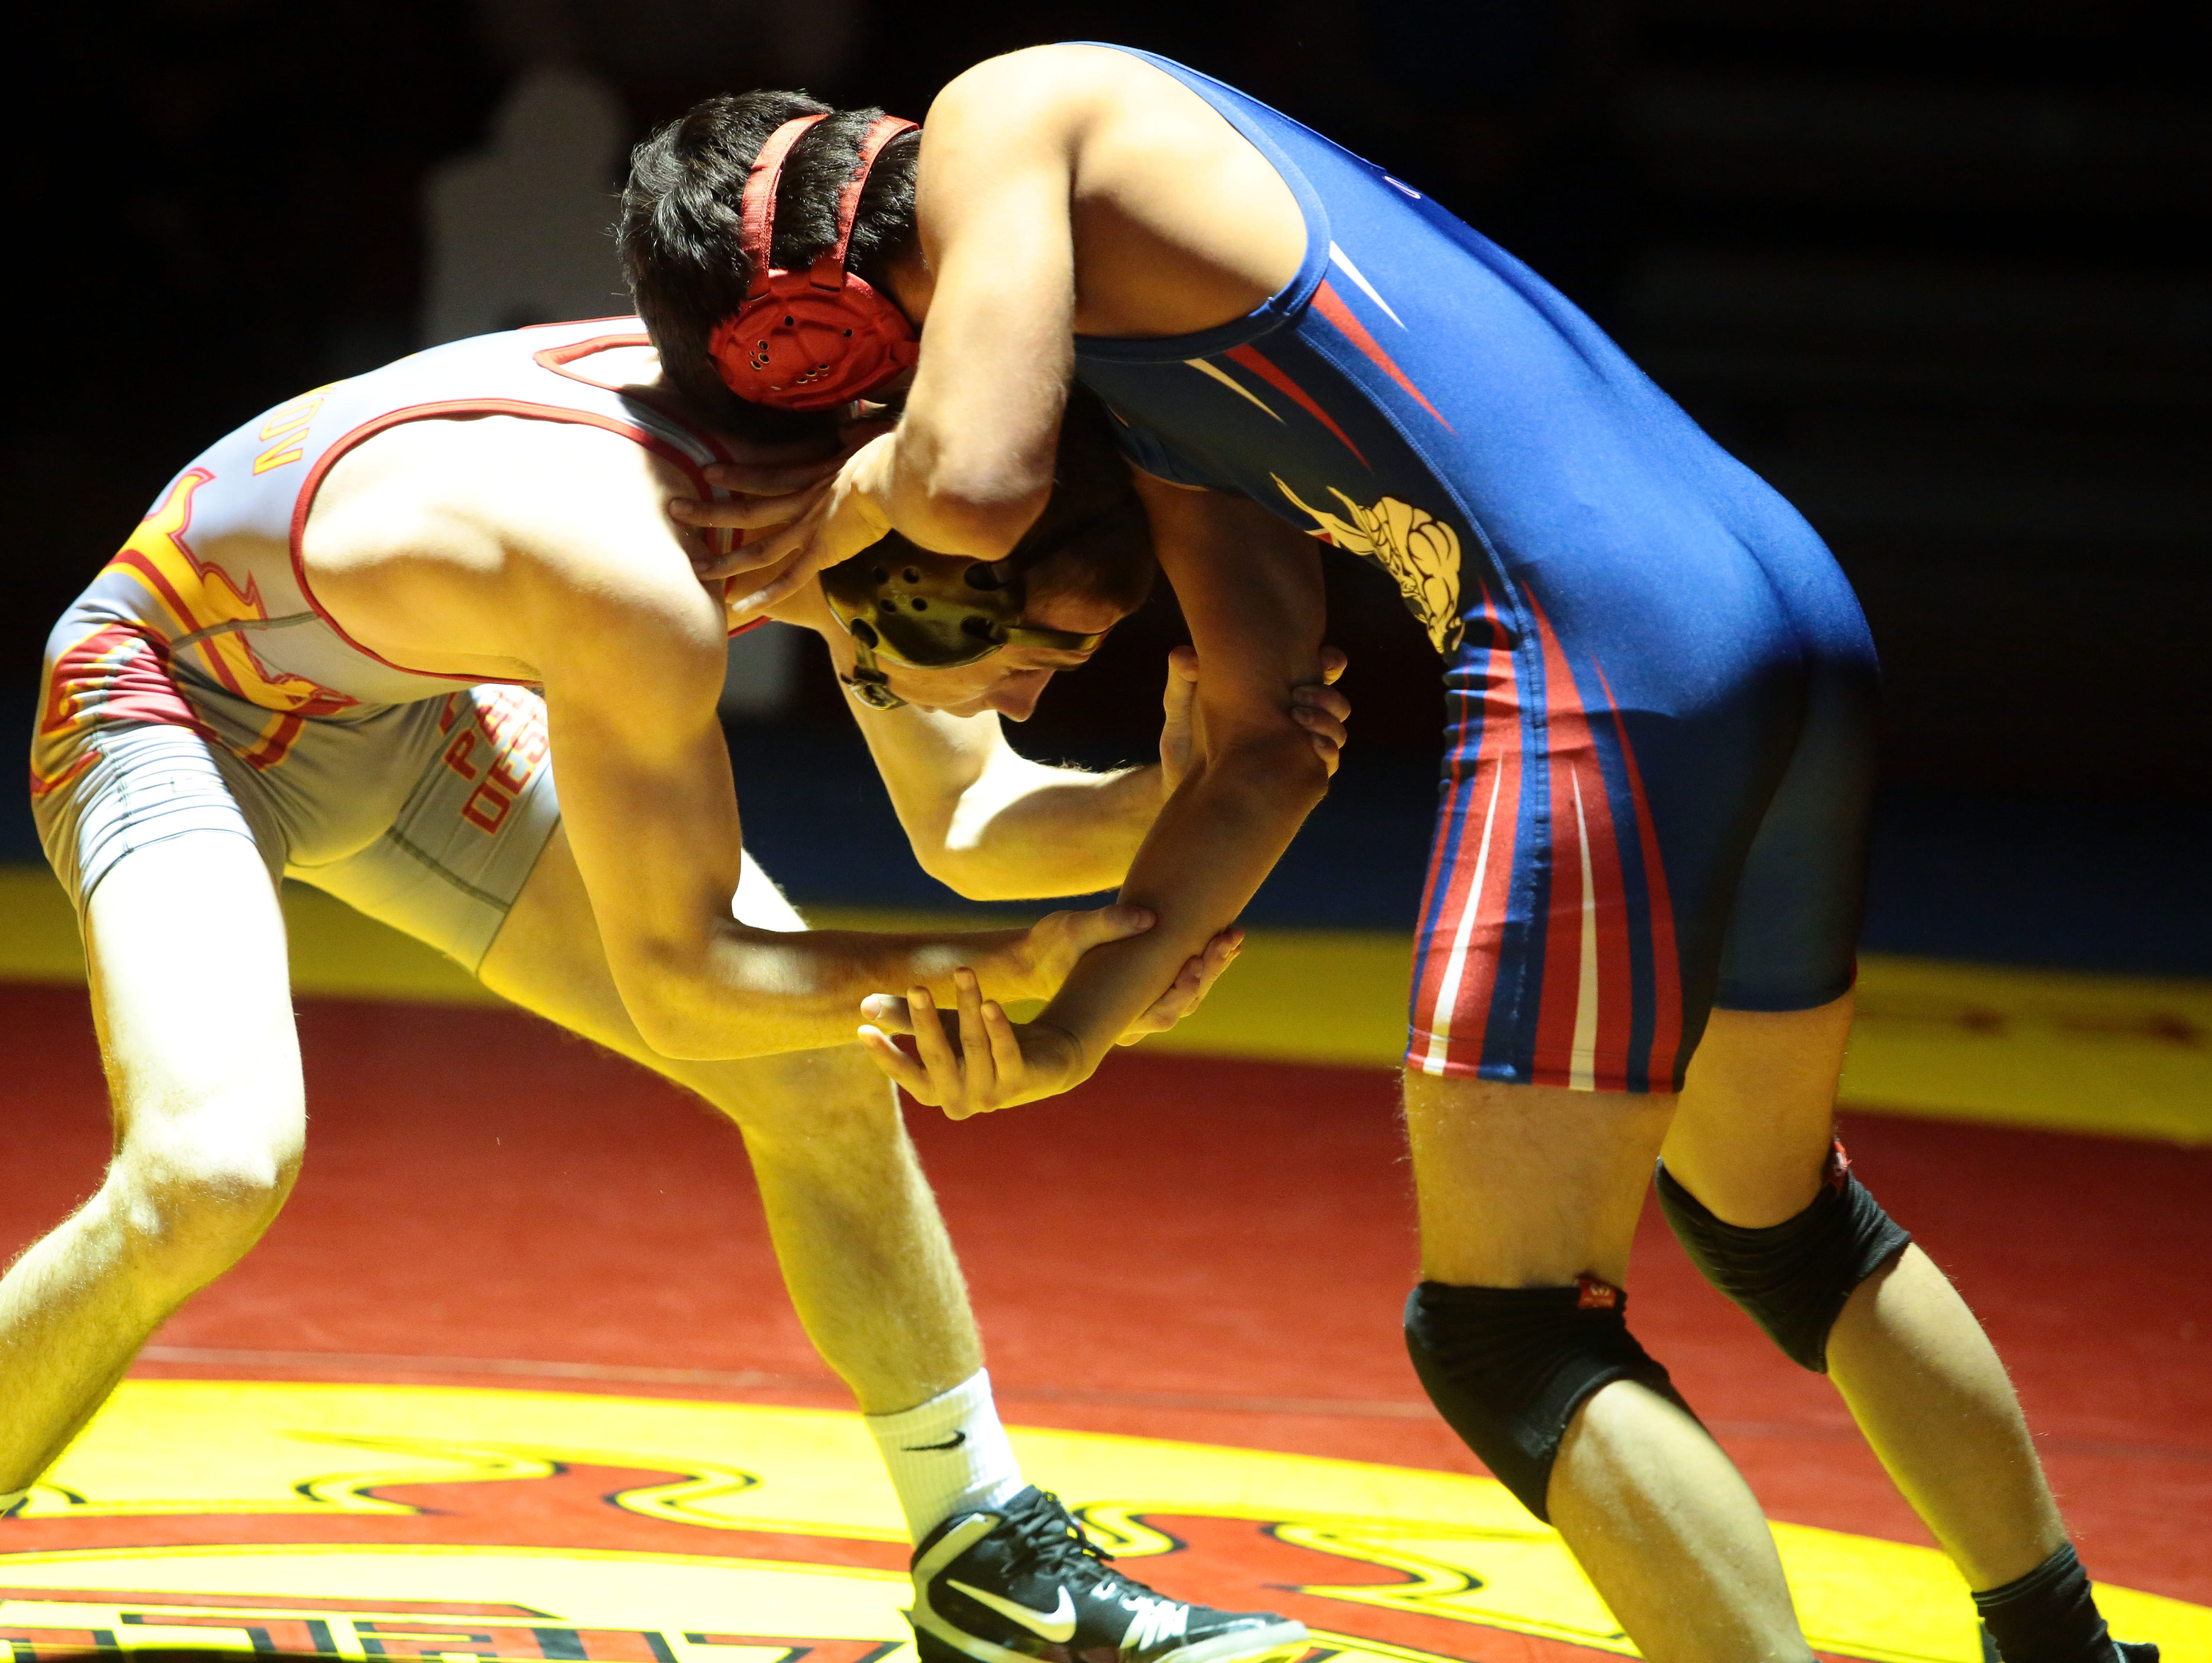 Palm Desert's Chase Overgoag takes on Indio's Chris Rodriguez in the 145 lbs. weight class on Wednesday January 13, 2016 in Palm Desert.